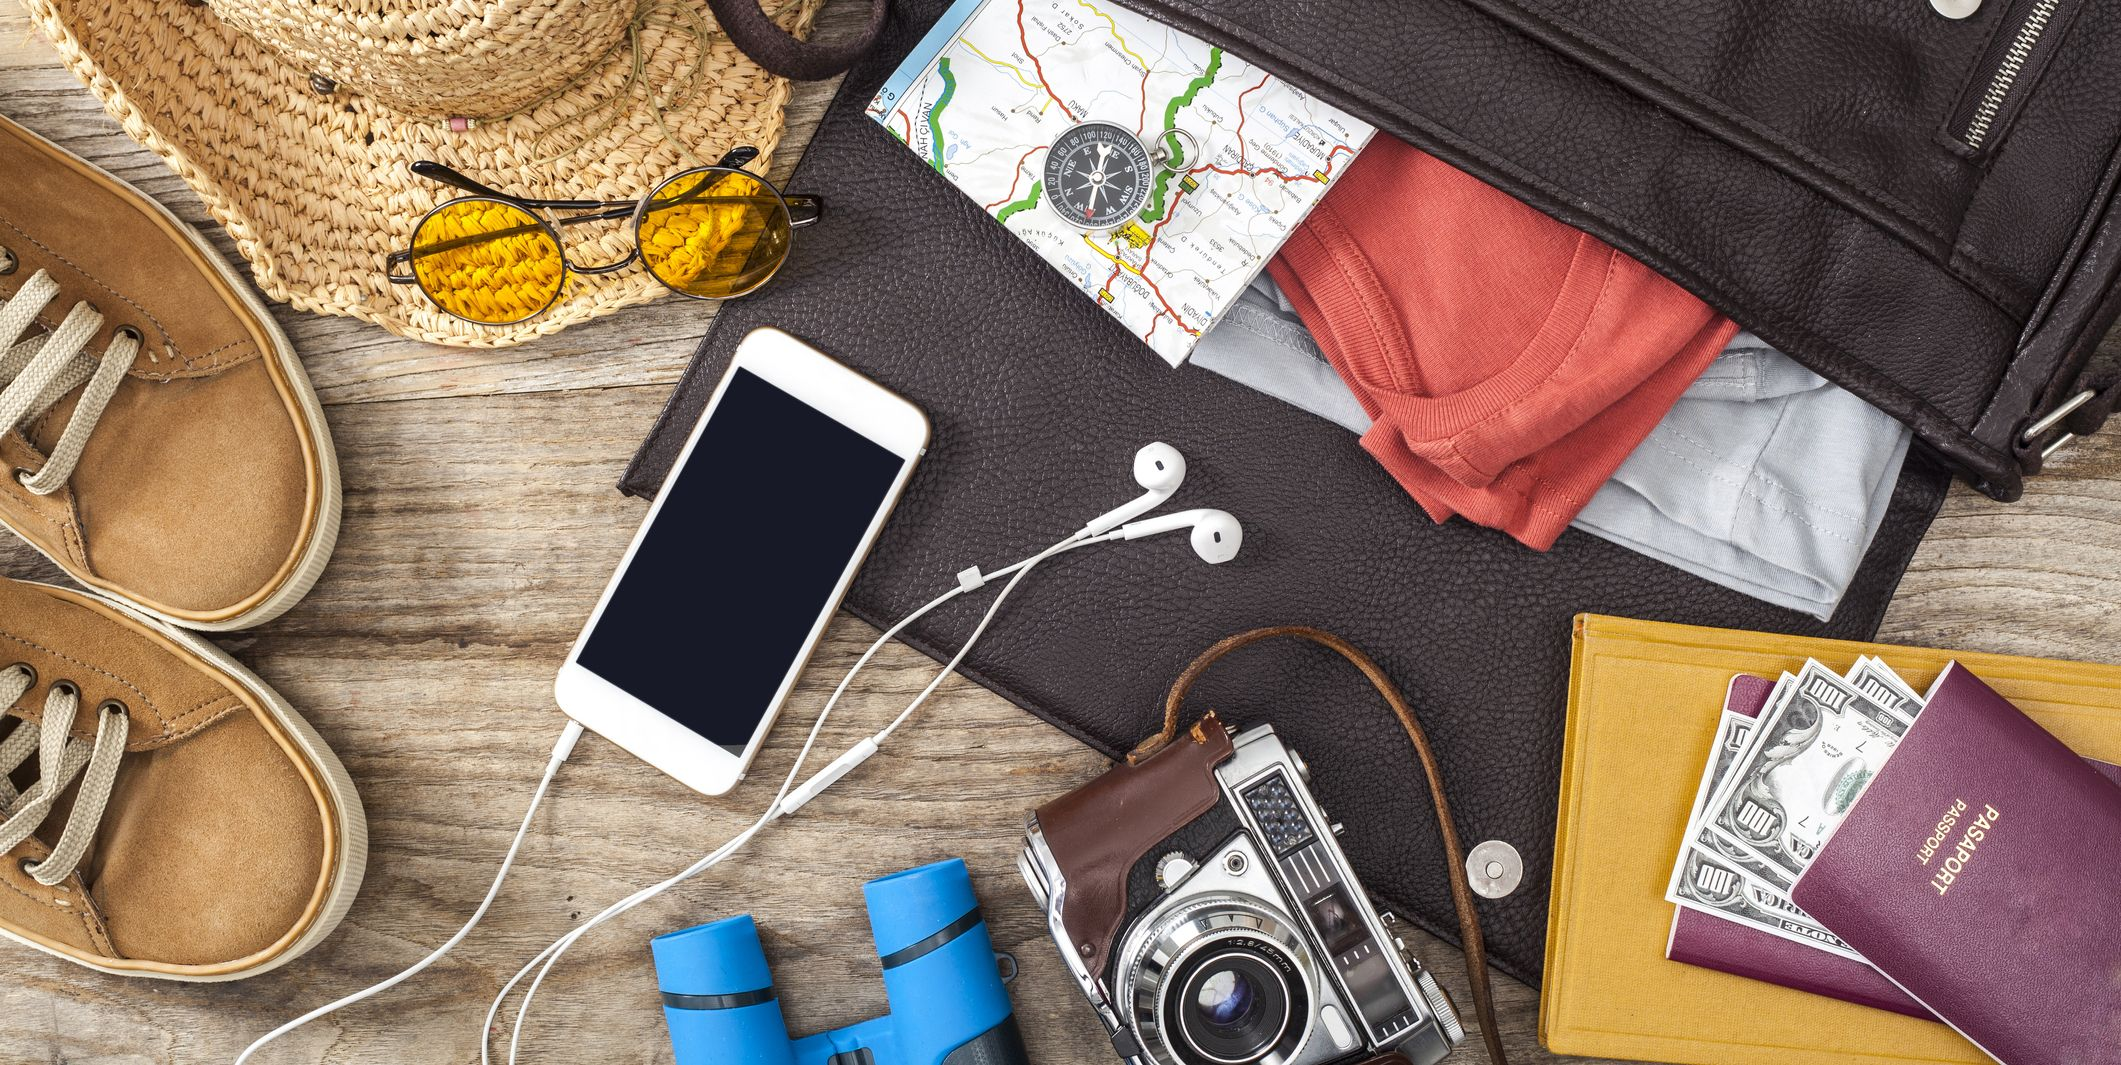 17 Best Travel Gadgets to Buy in 2019, According to the GH Institute